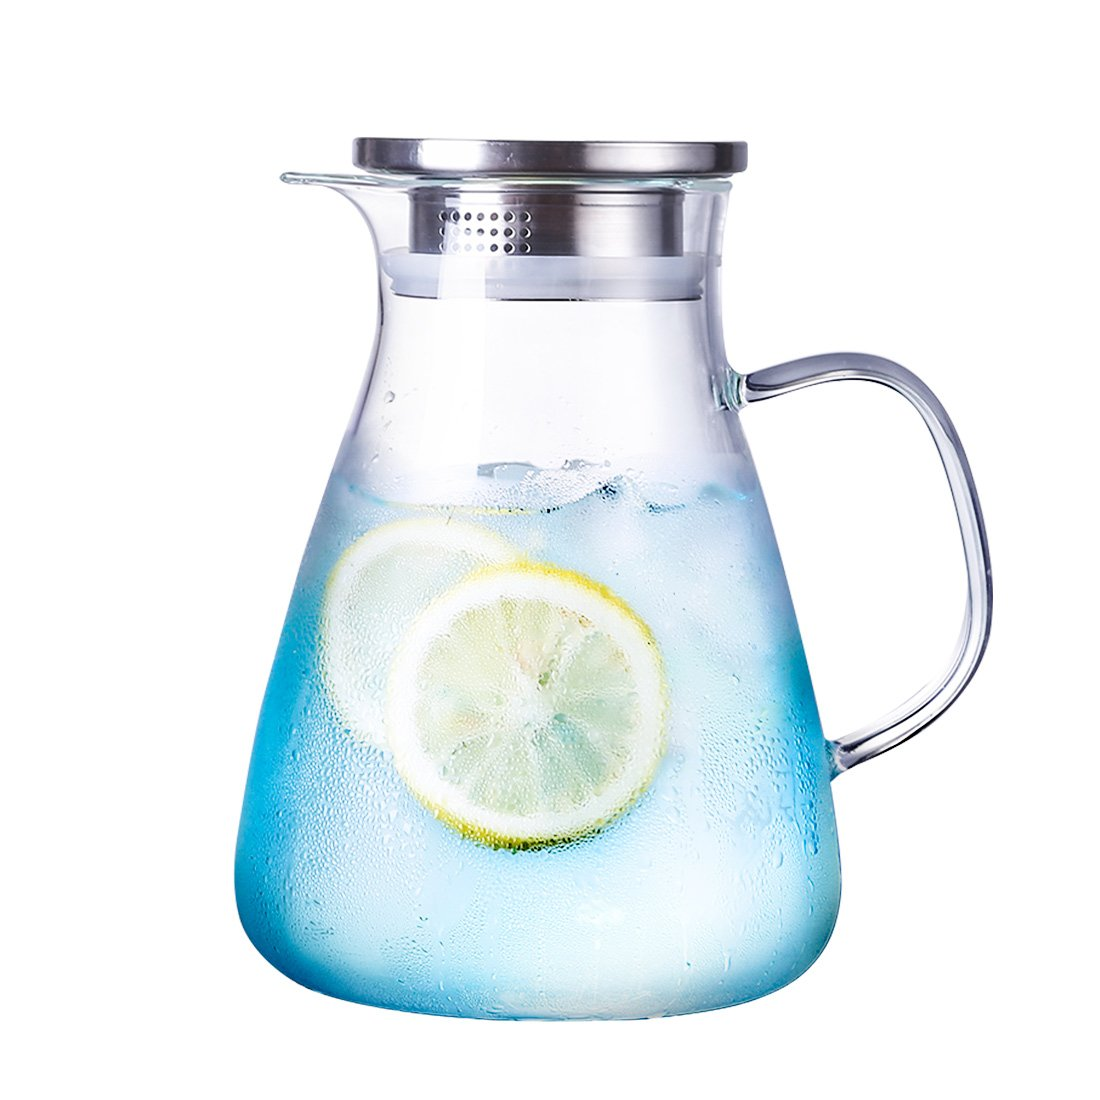 ONEISALL 54.5 Ounces Borosilicate Glass Carafe with Stainless Steel Lid,Iced Water Pitchers with Handle,Water Jugs for Handmade Juice Beverage,Hot/Cold Water and Ice Tea.